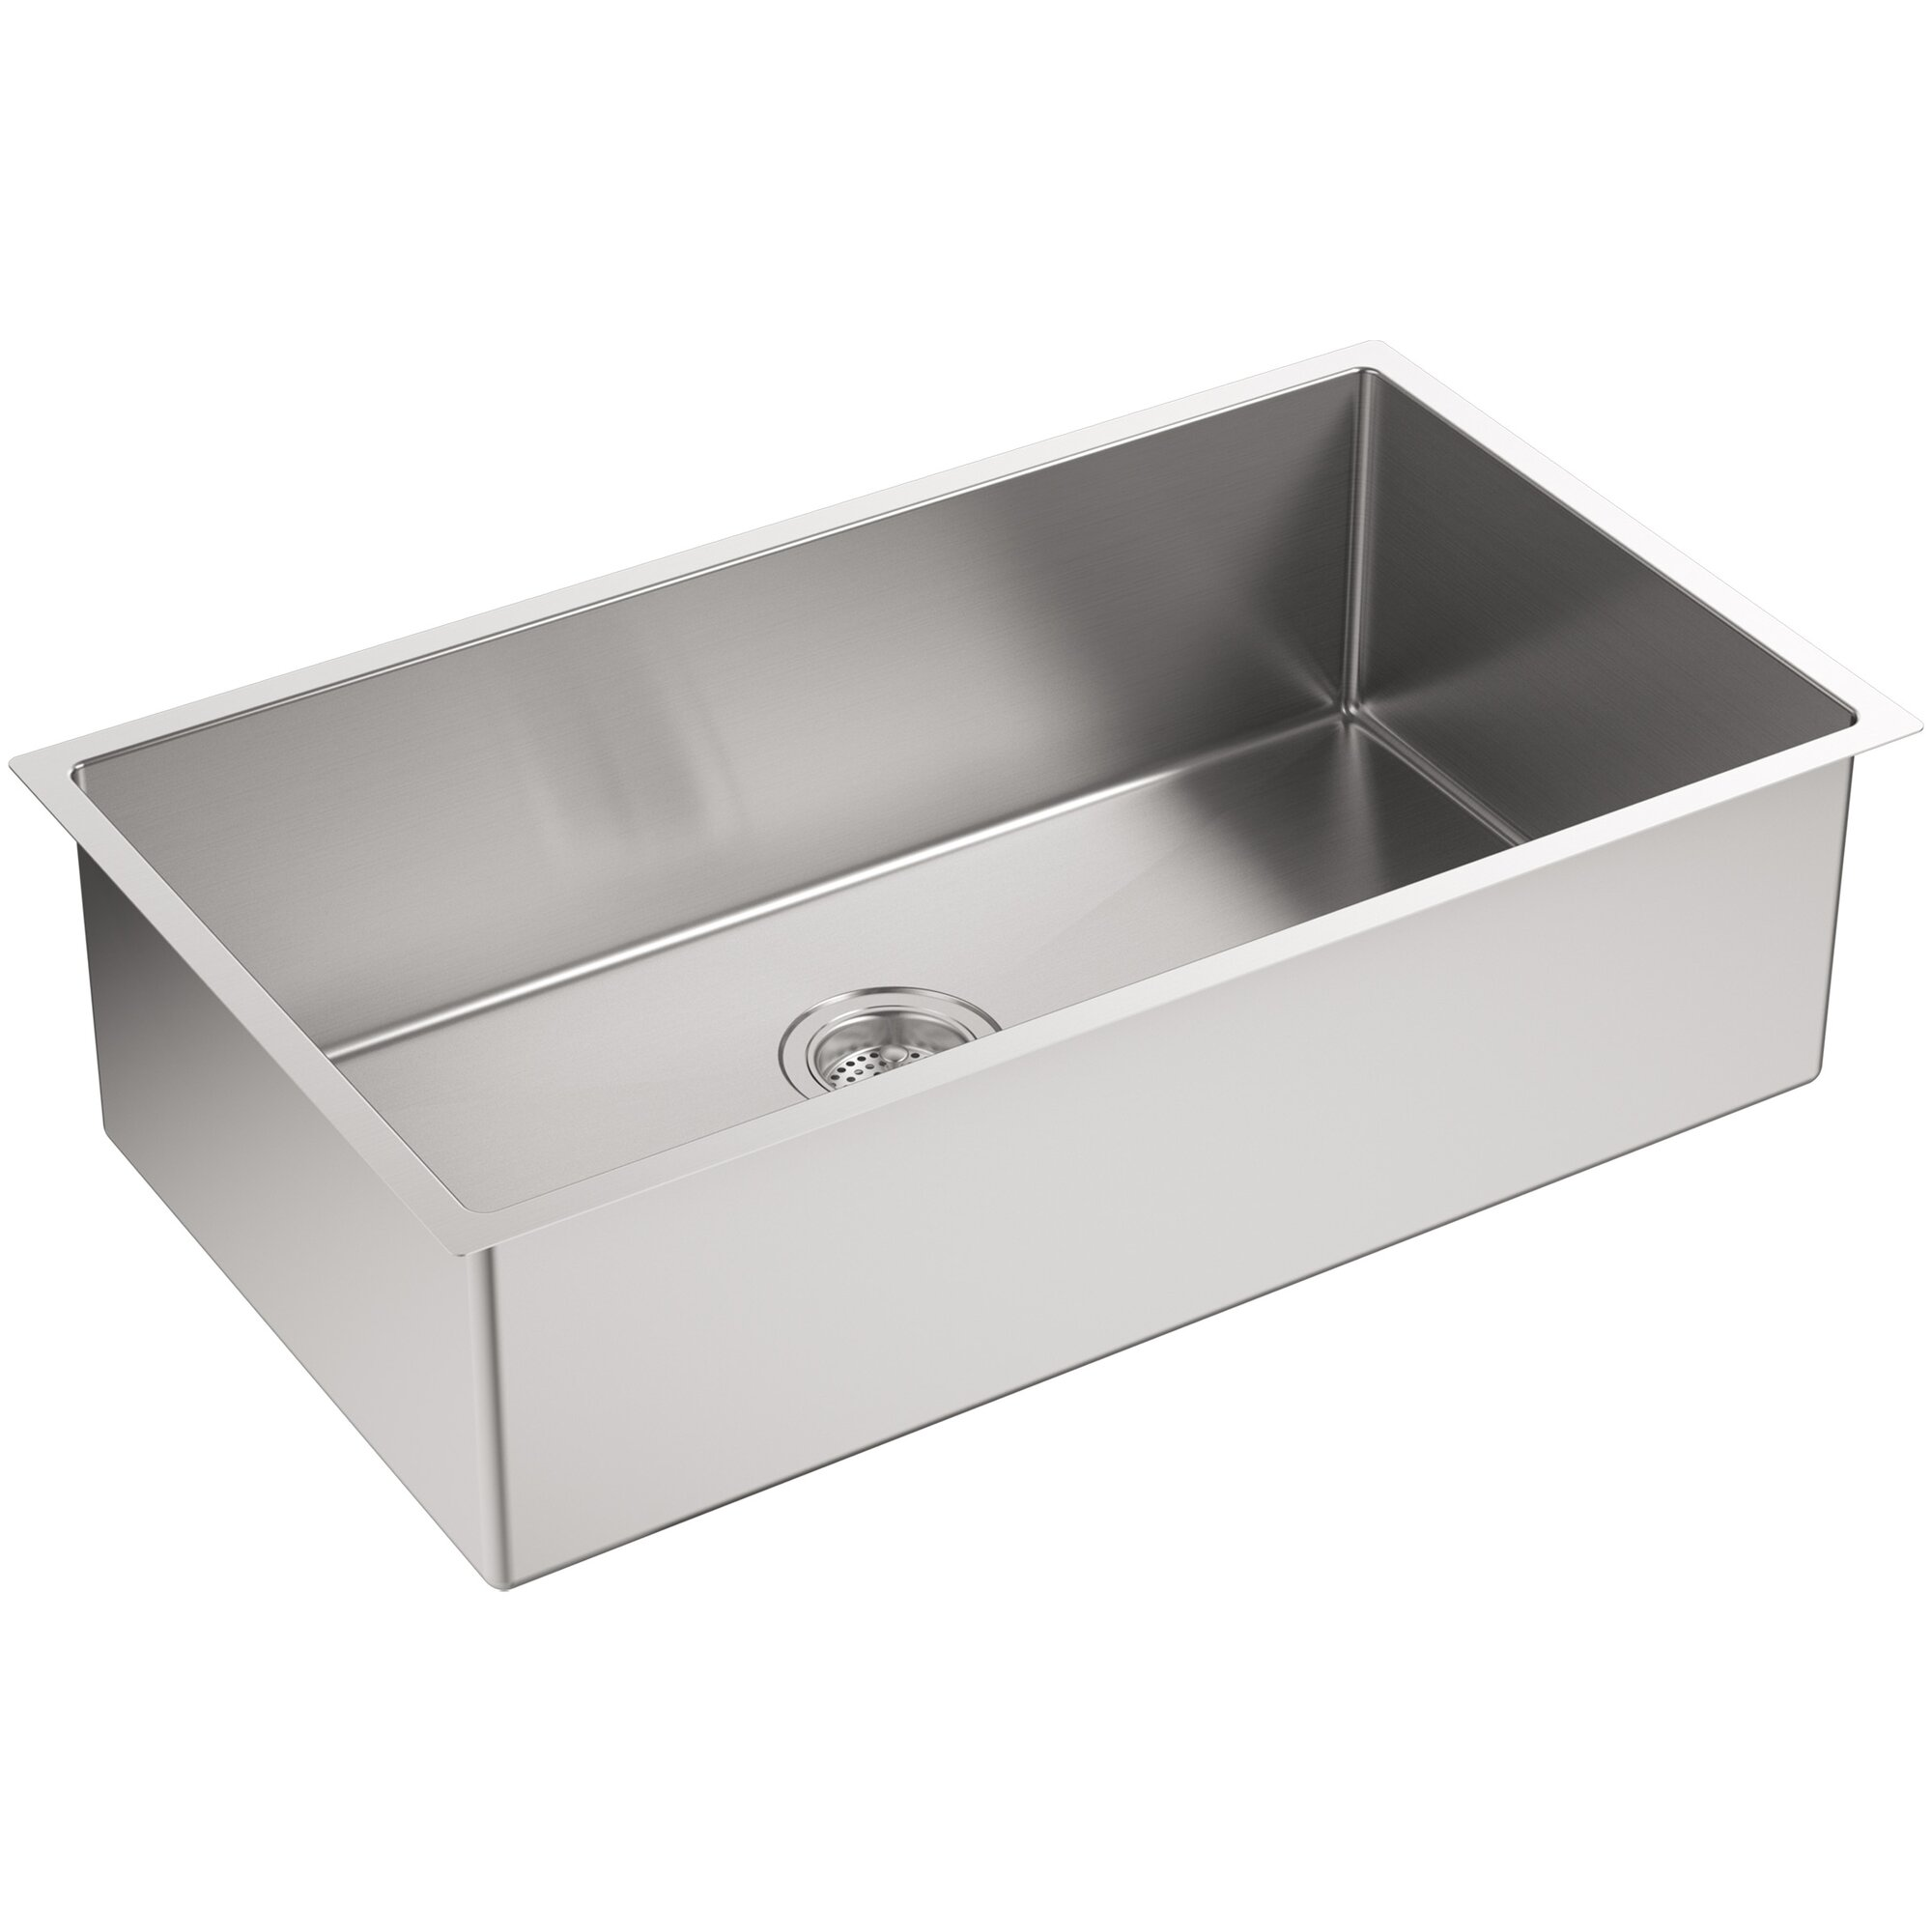 strive 32 x 1825 undermount single bowl kitchen sink with - White Single Basin Kitchen Sink